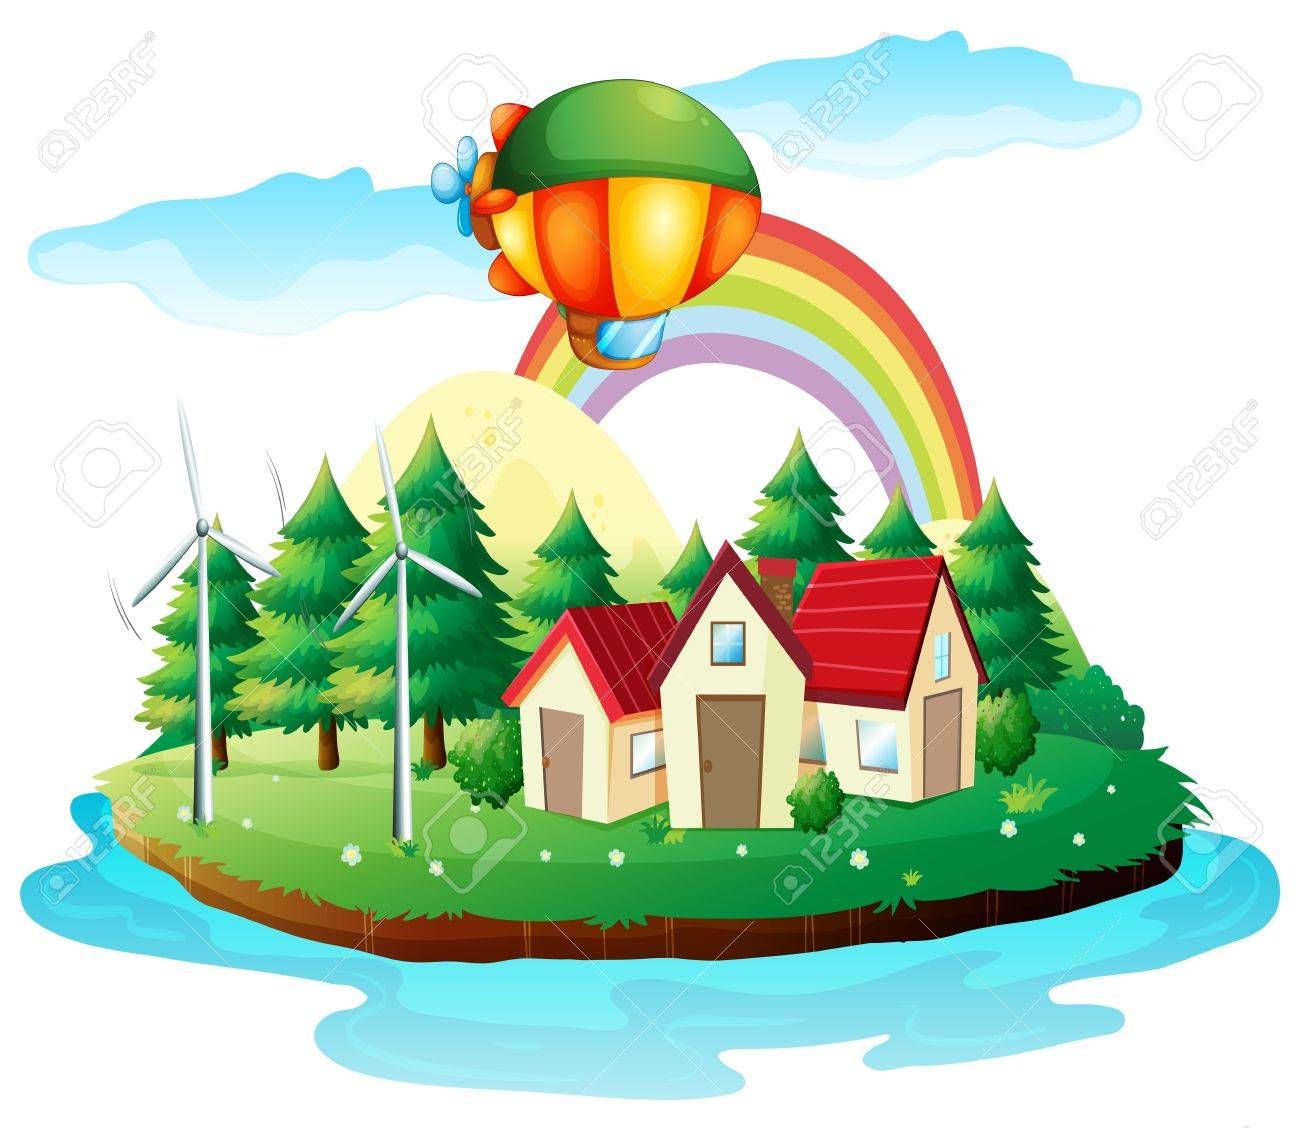 Illustration of a village in an island on a white background Stock Vector - 17918554